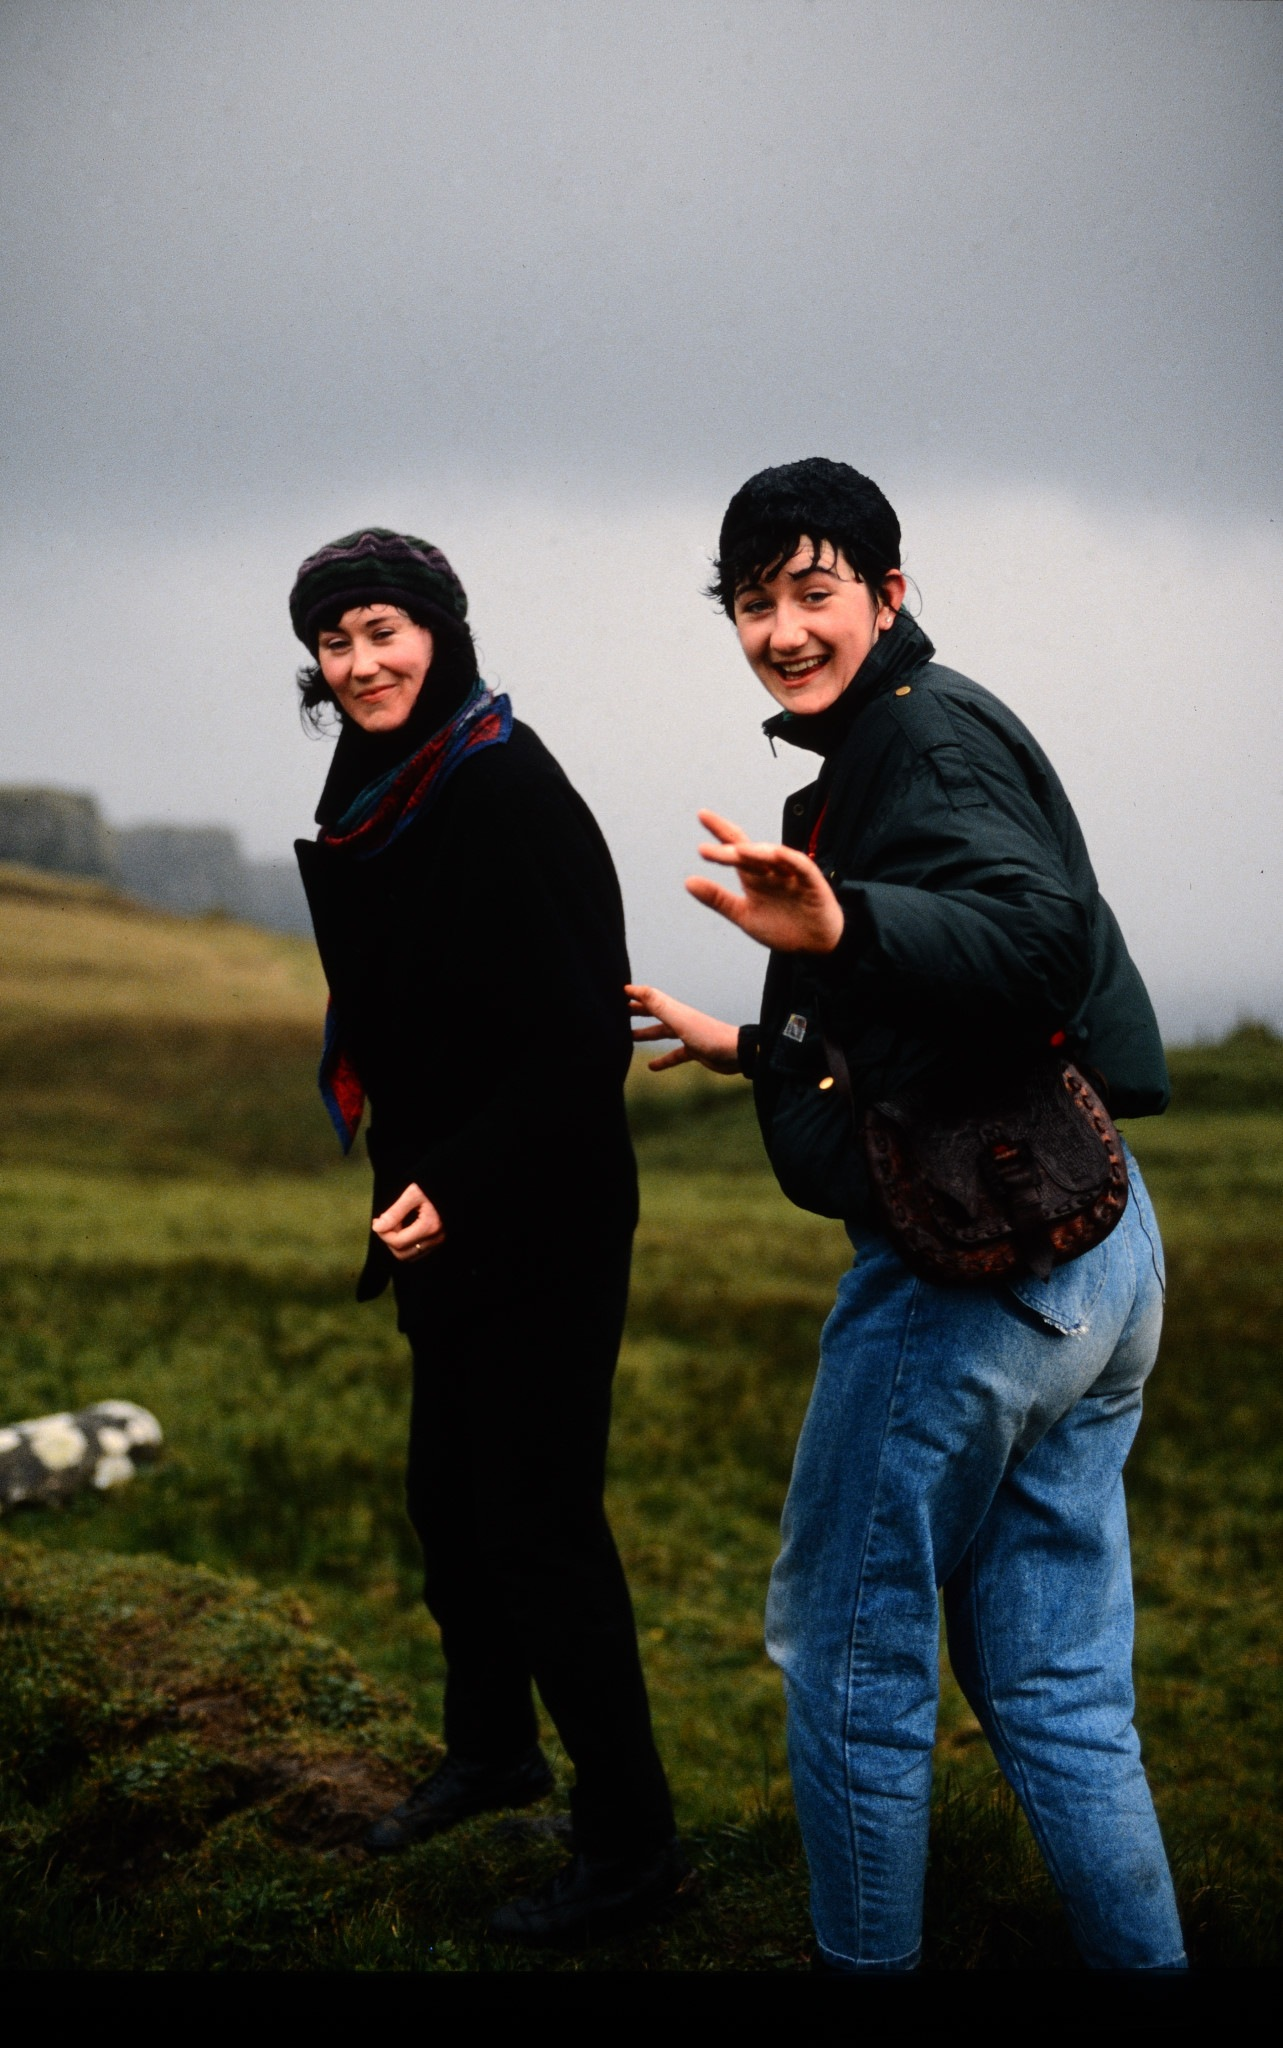 Two Irish gals at the Cliffs of Moher by Frank Fremerey